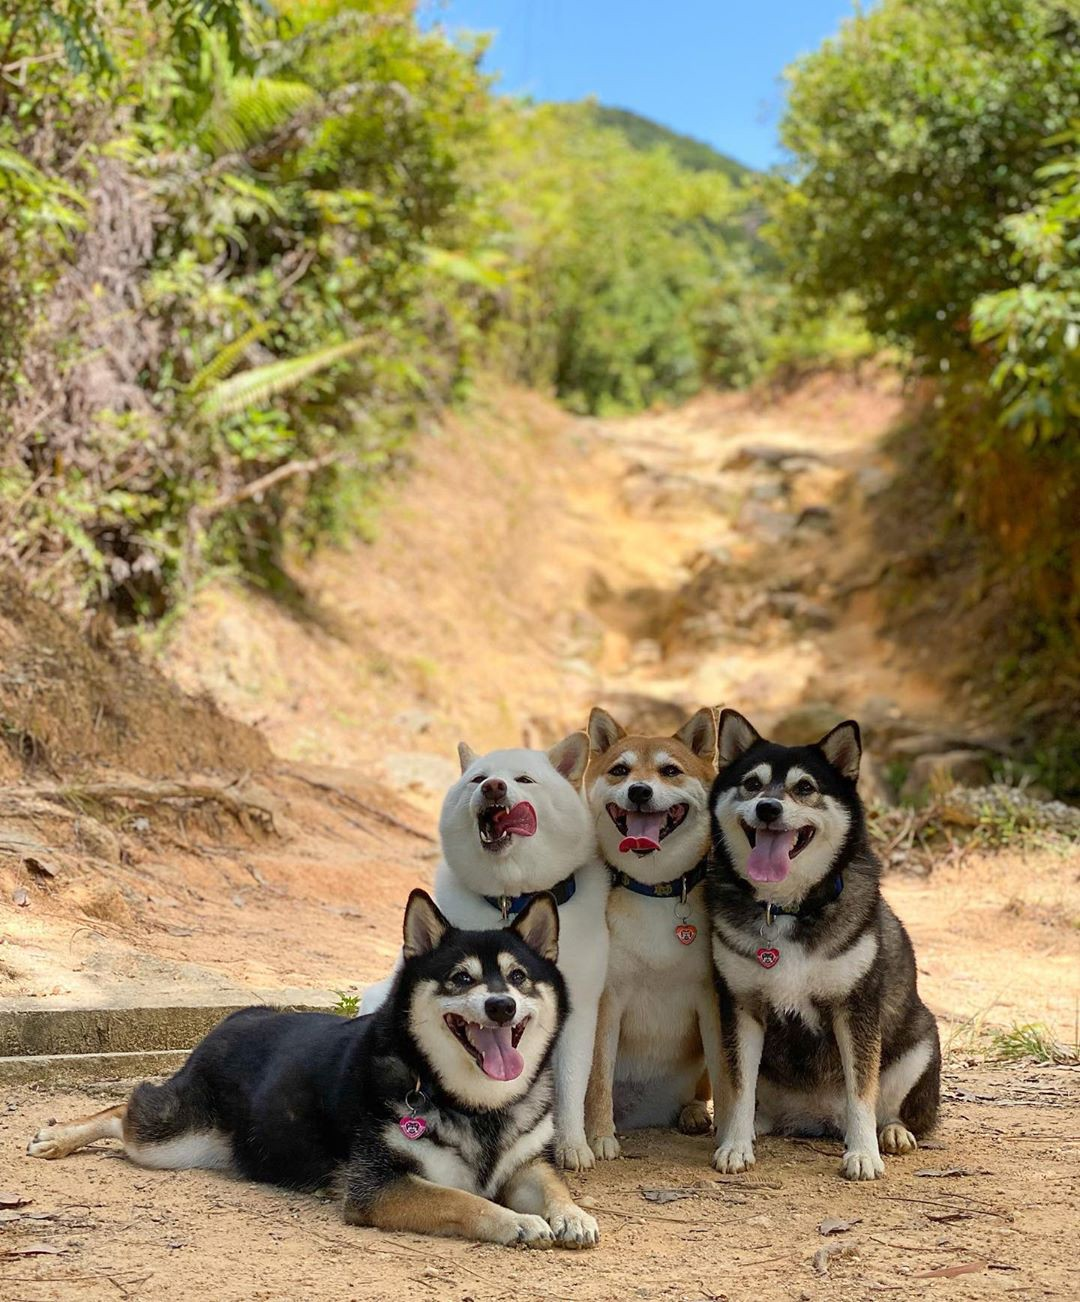 The dogs pose on a hiking trail with their tongues out in the sun, but Hina's tongue is rolling out of the side of her mouth